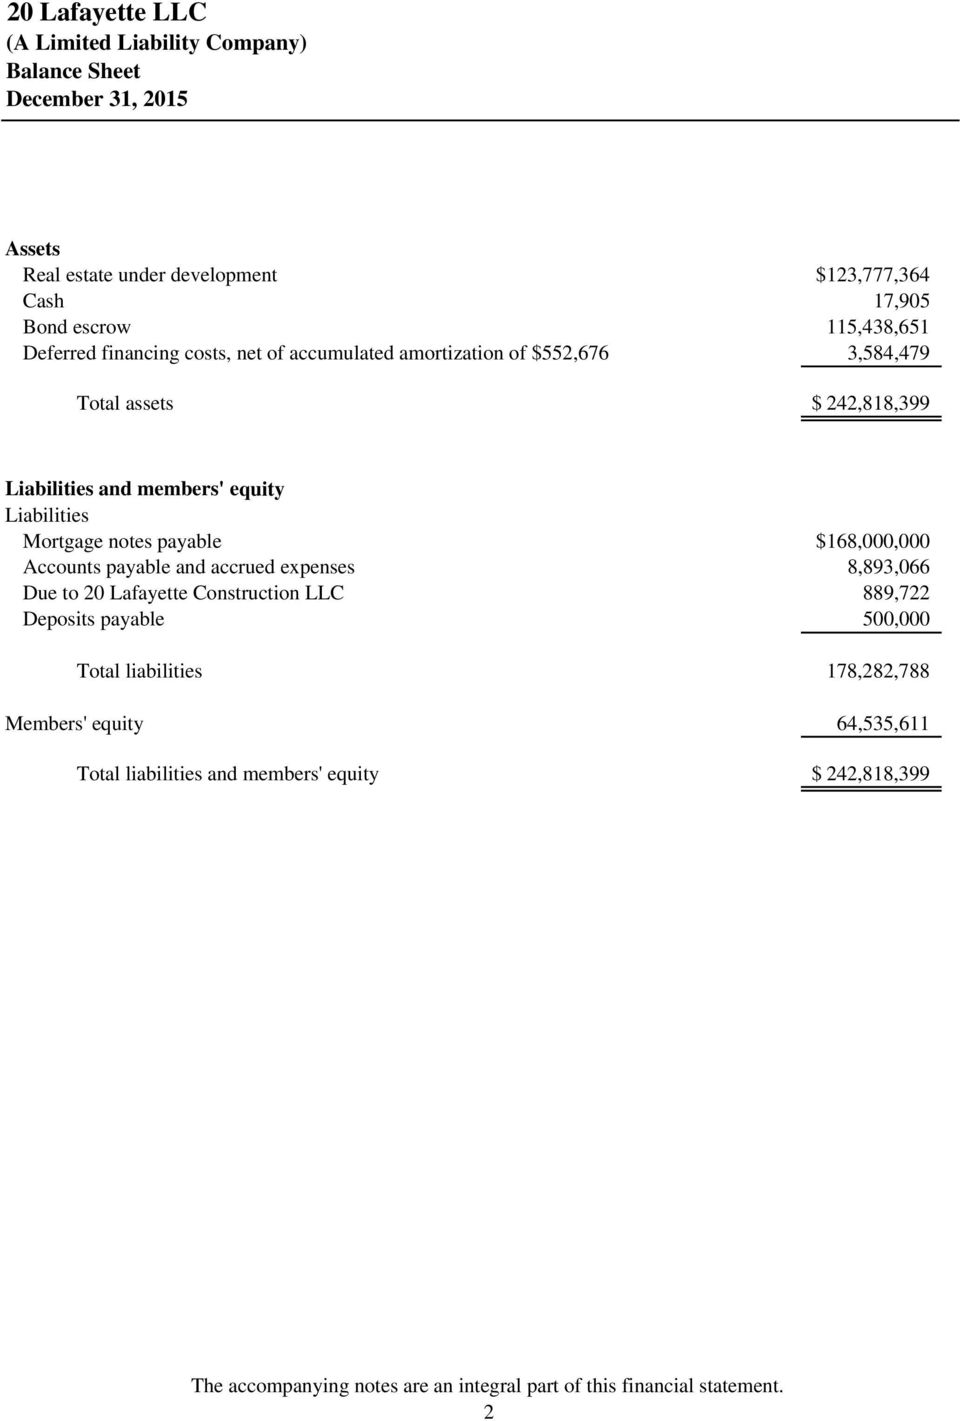 Accounts payable and accrued expenses 8,893,066 Due to 20 Lafayette Construction LLC 889,722 Deposits payable 500,000 Total liabilities 178,282,788